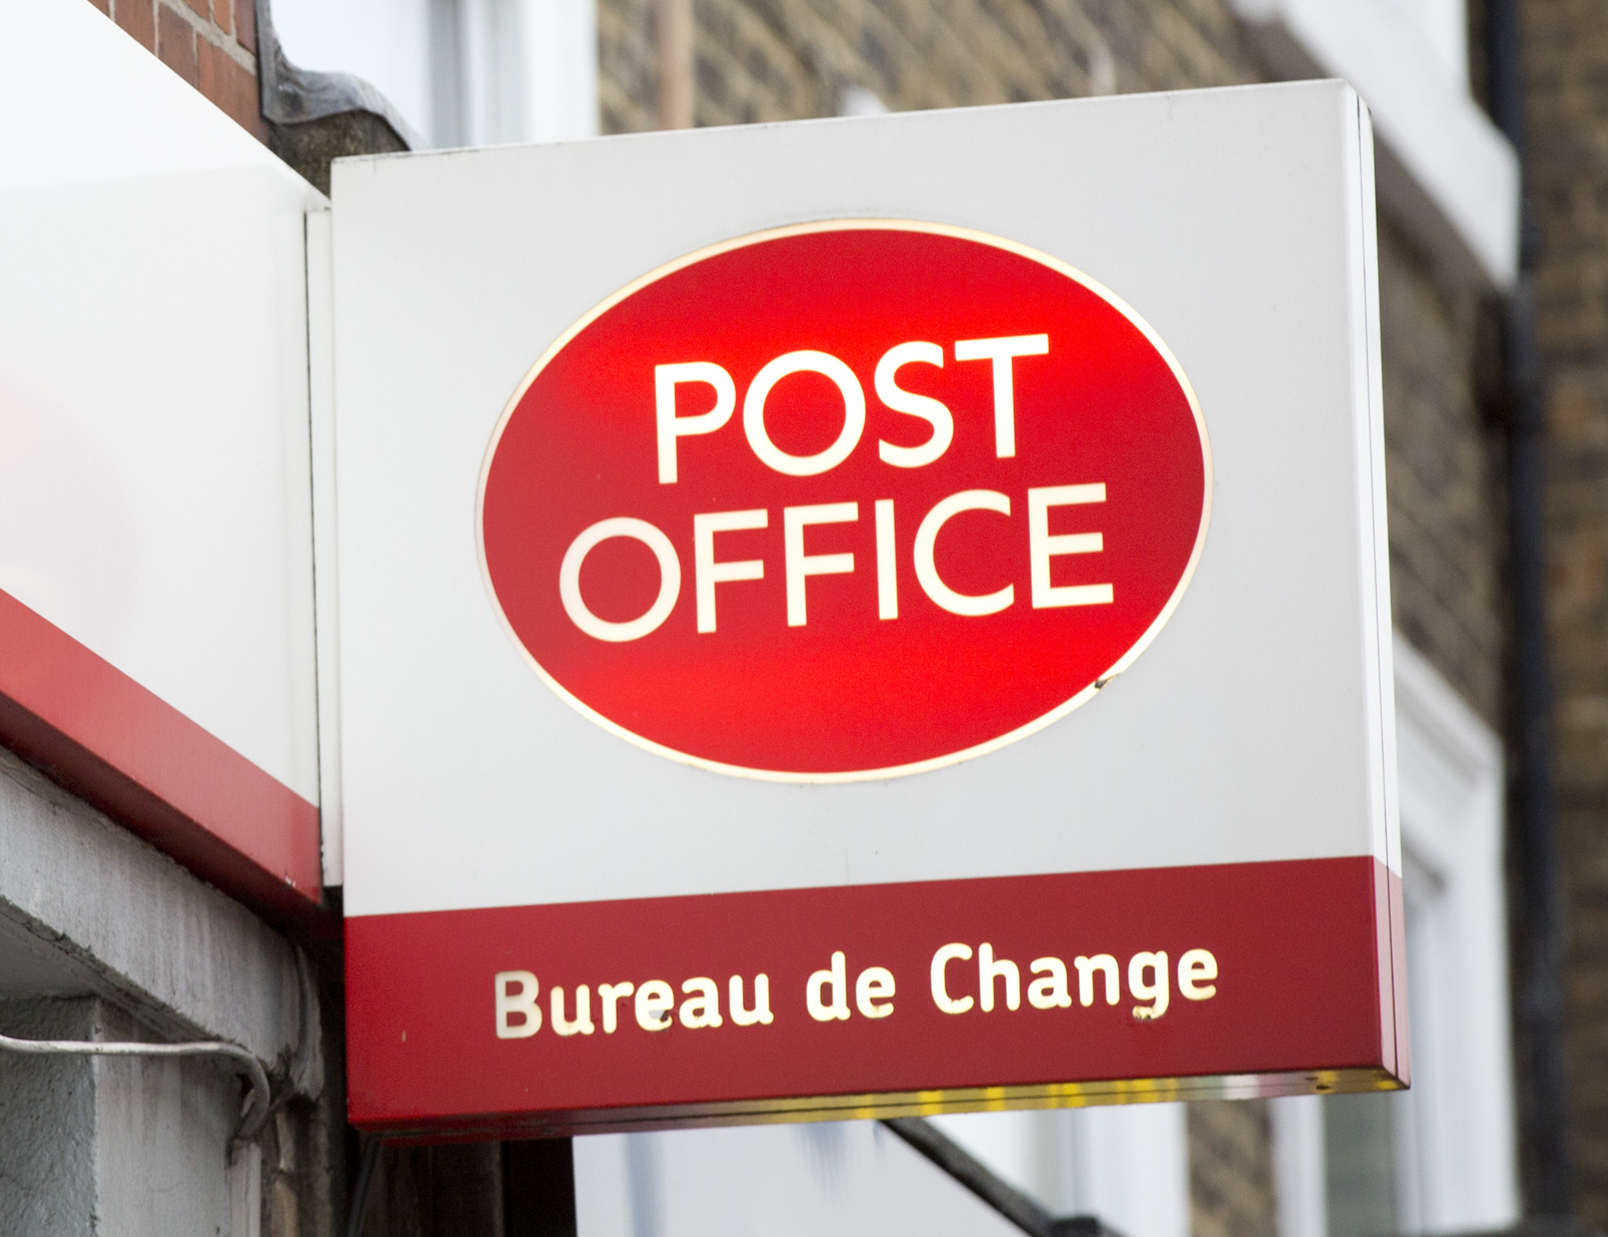 Man uses 'sleight of hand' to steal £20 notes from Post Offices near Dorchester